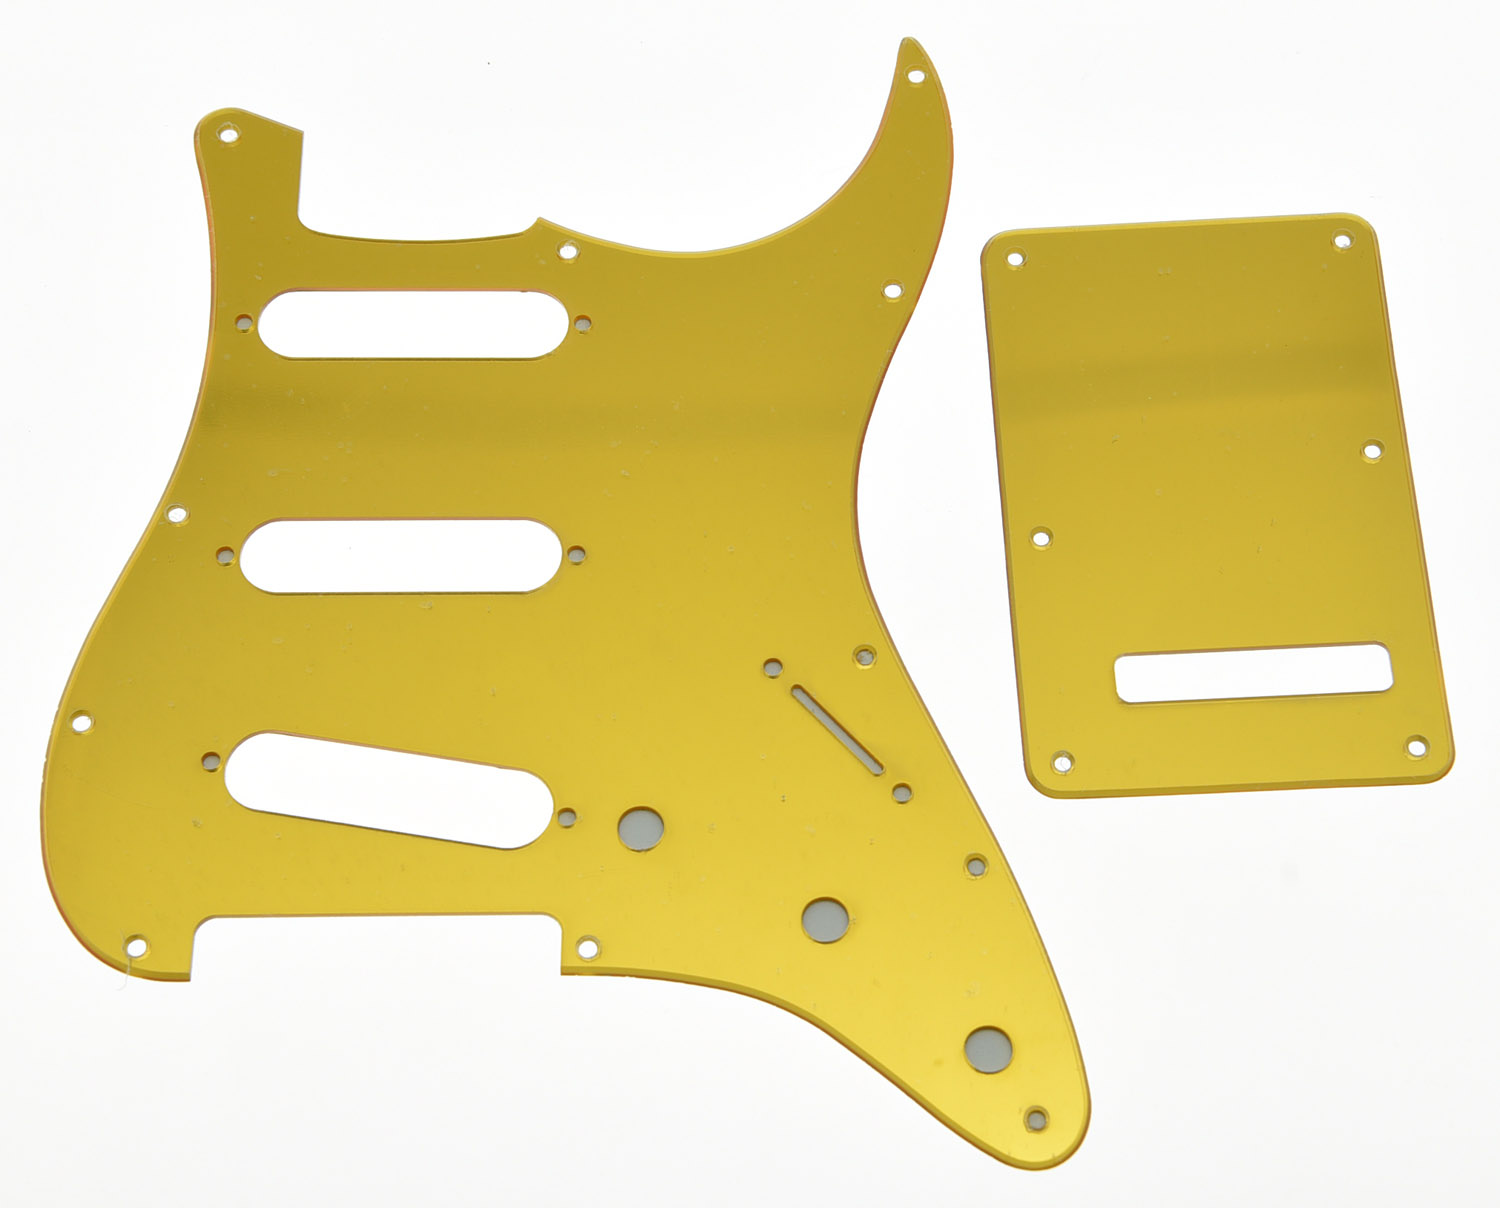 KAISH Gold Mirror SSS ST Style Guitar Pickguard Back Plate Screws fits USA ST sg standard full face guitar pickguard scratch plate zebra stripe with screws